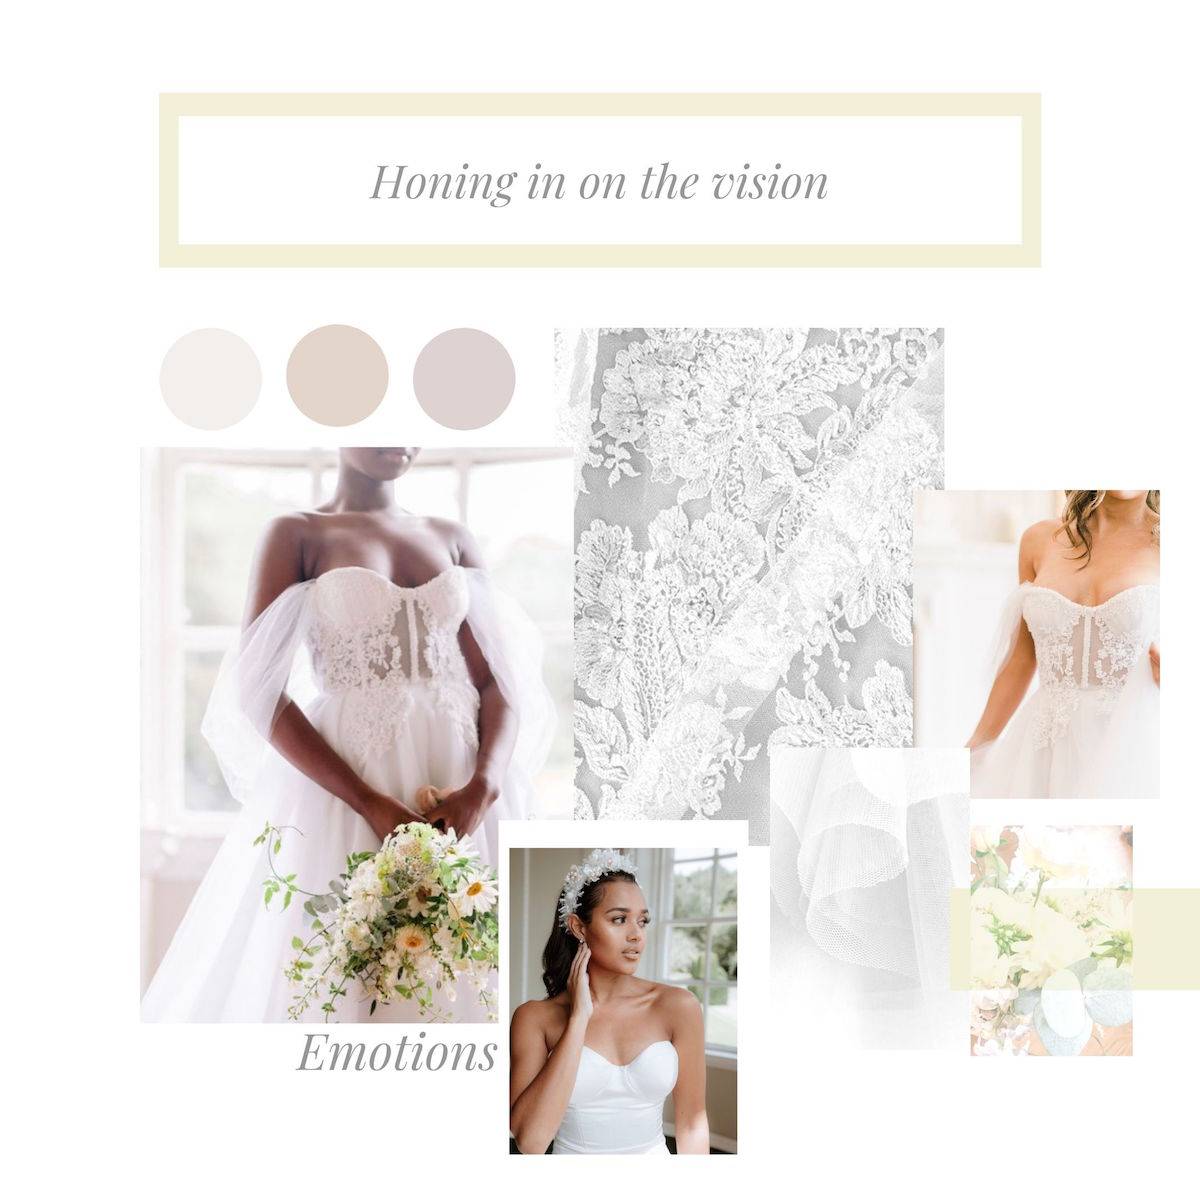 A moodboard for a bride to visualise the vision she has for her dream wedding dress.